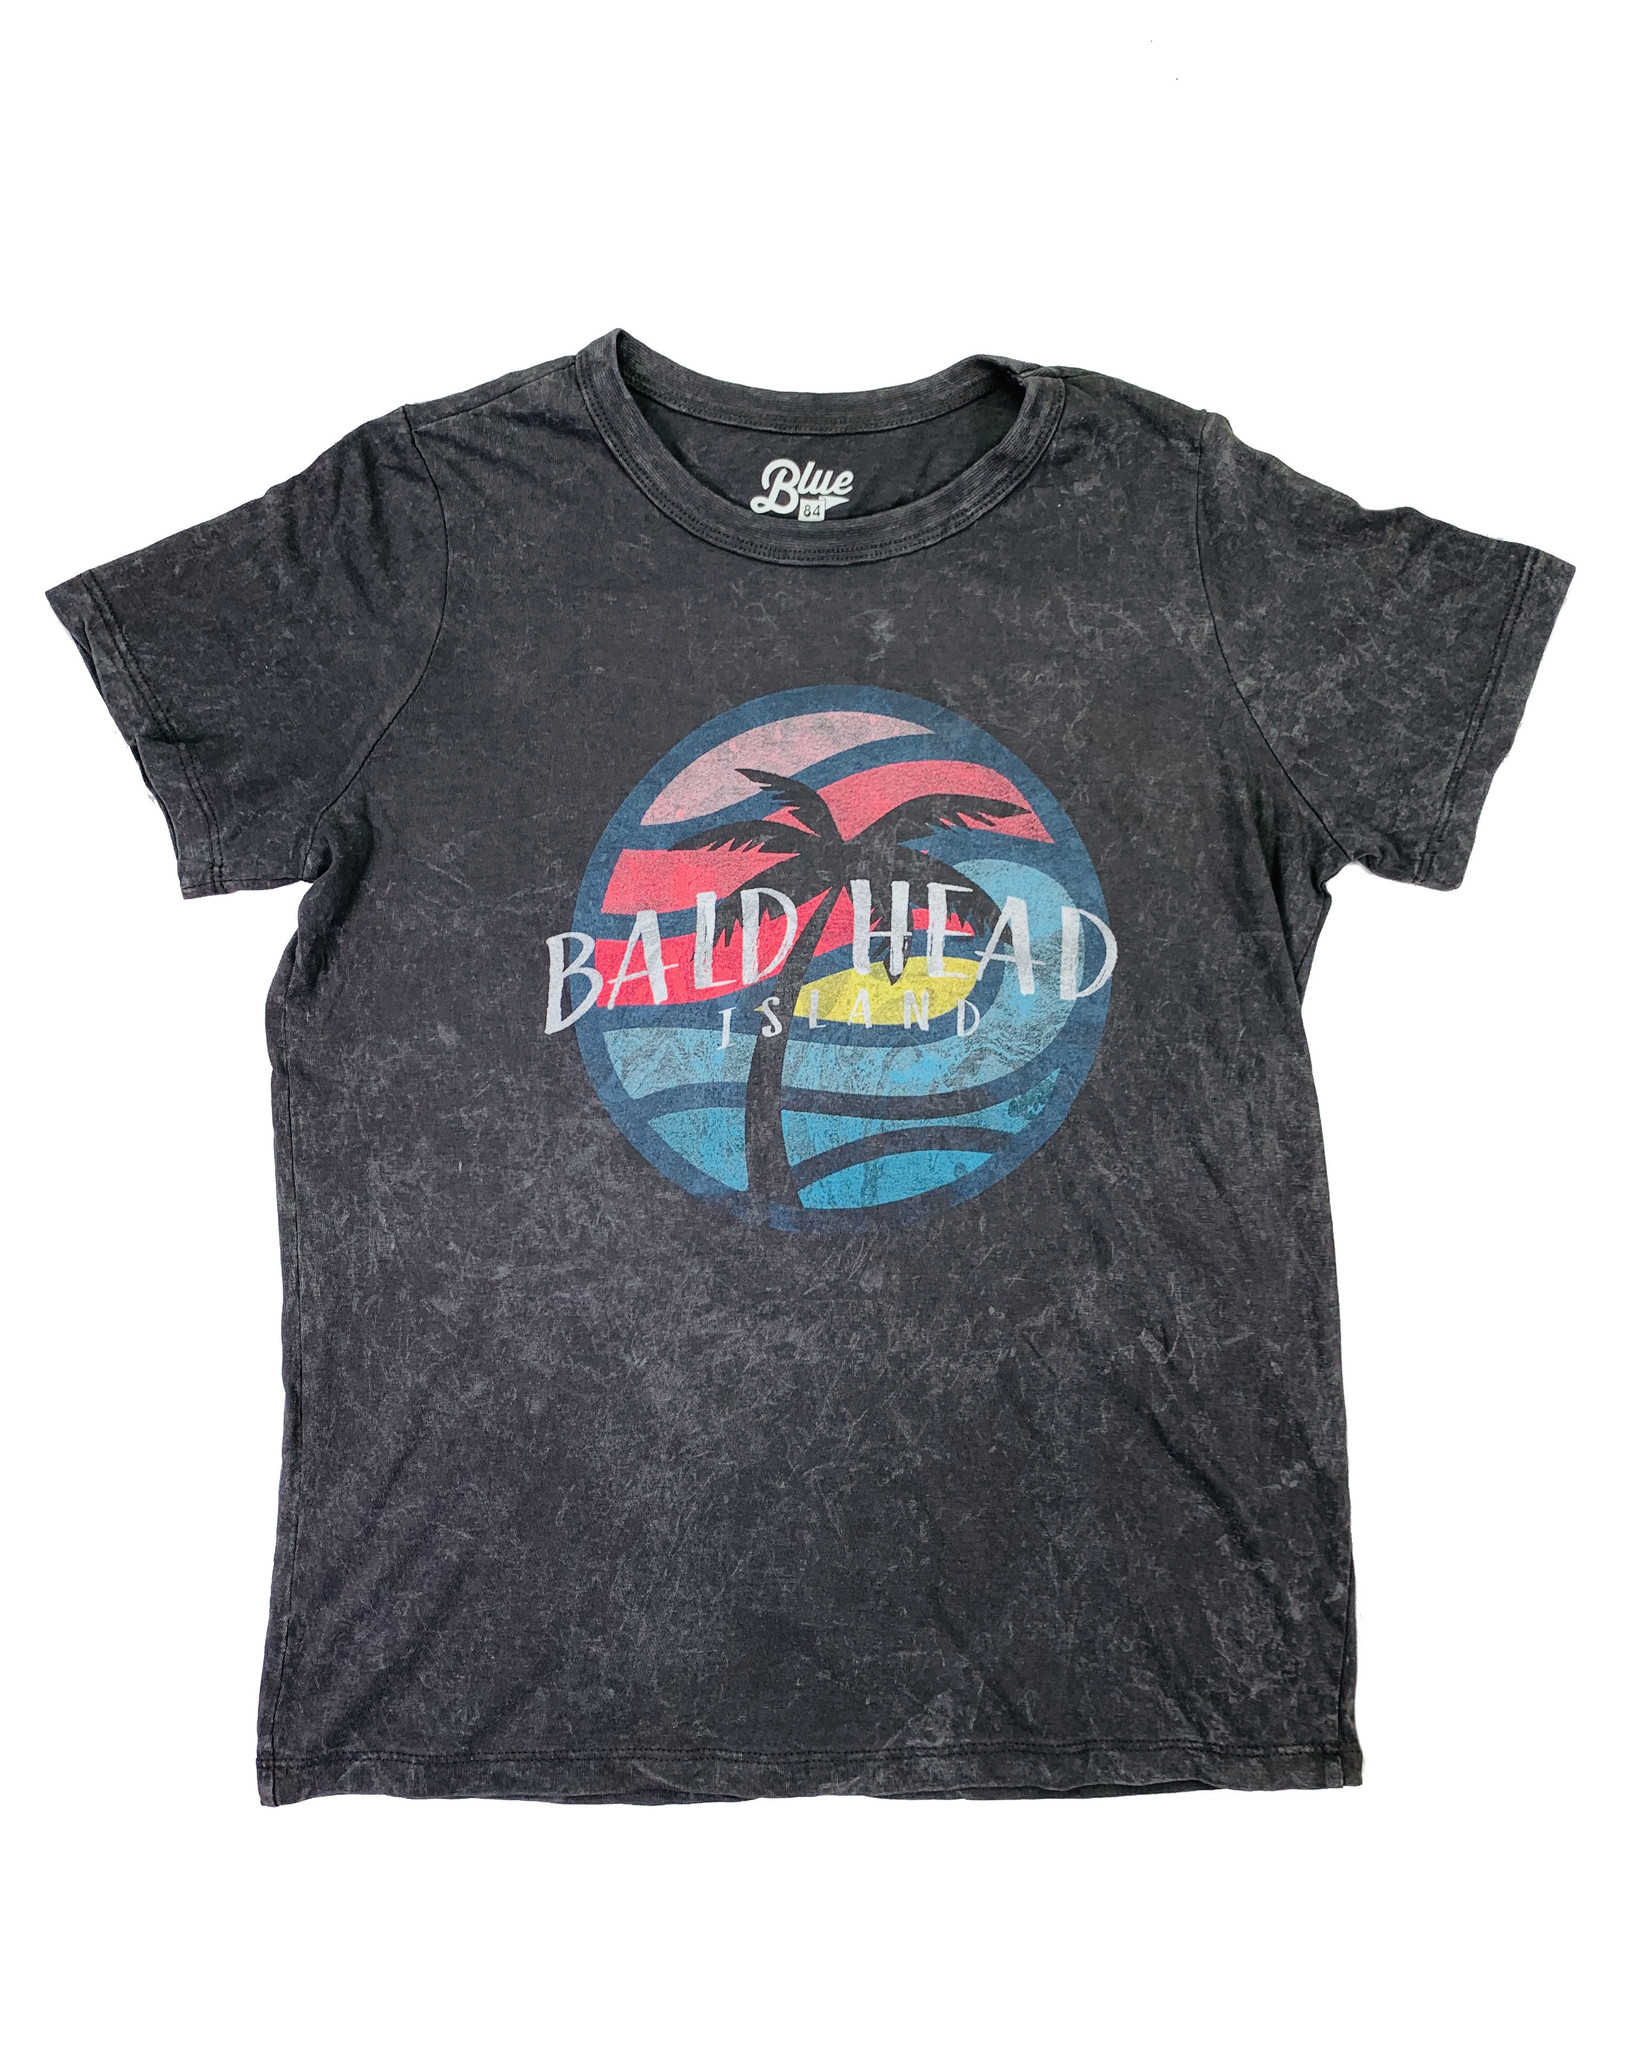 Blue 84 BHI Ballard Palm Mineral Wash Tee